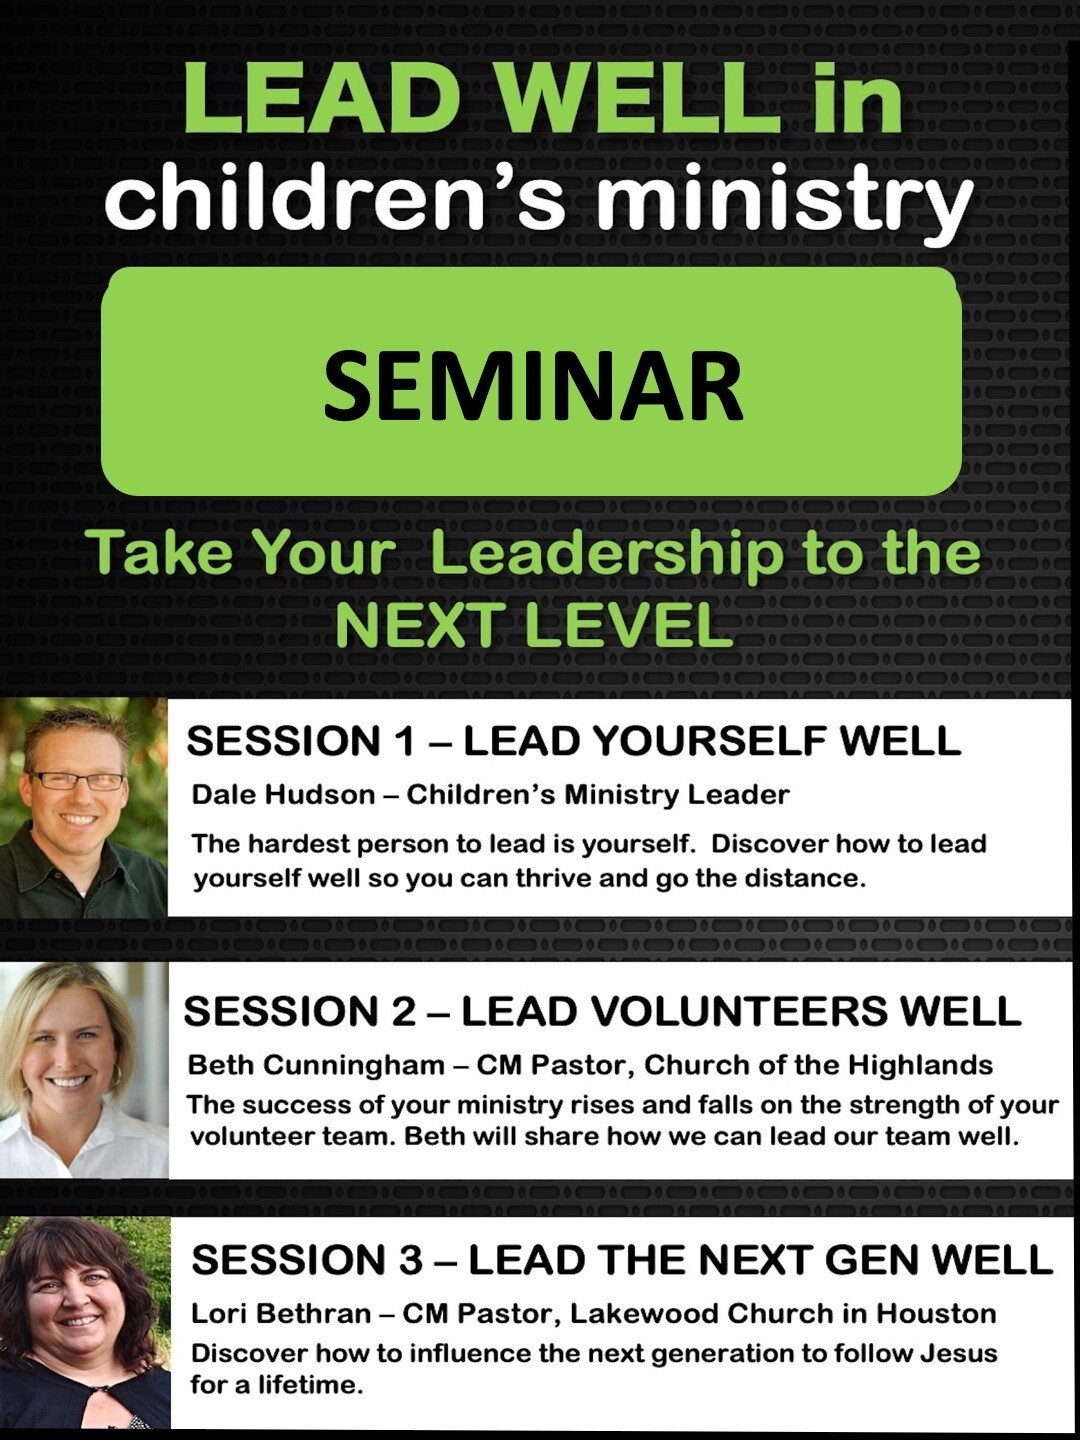 LEAD WELL in Children's Ministry Seminar